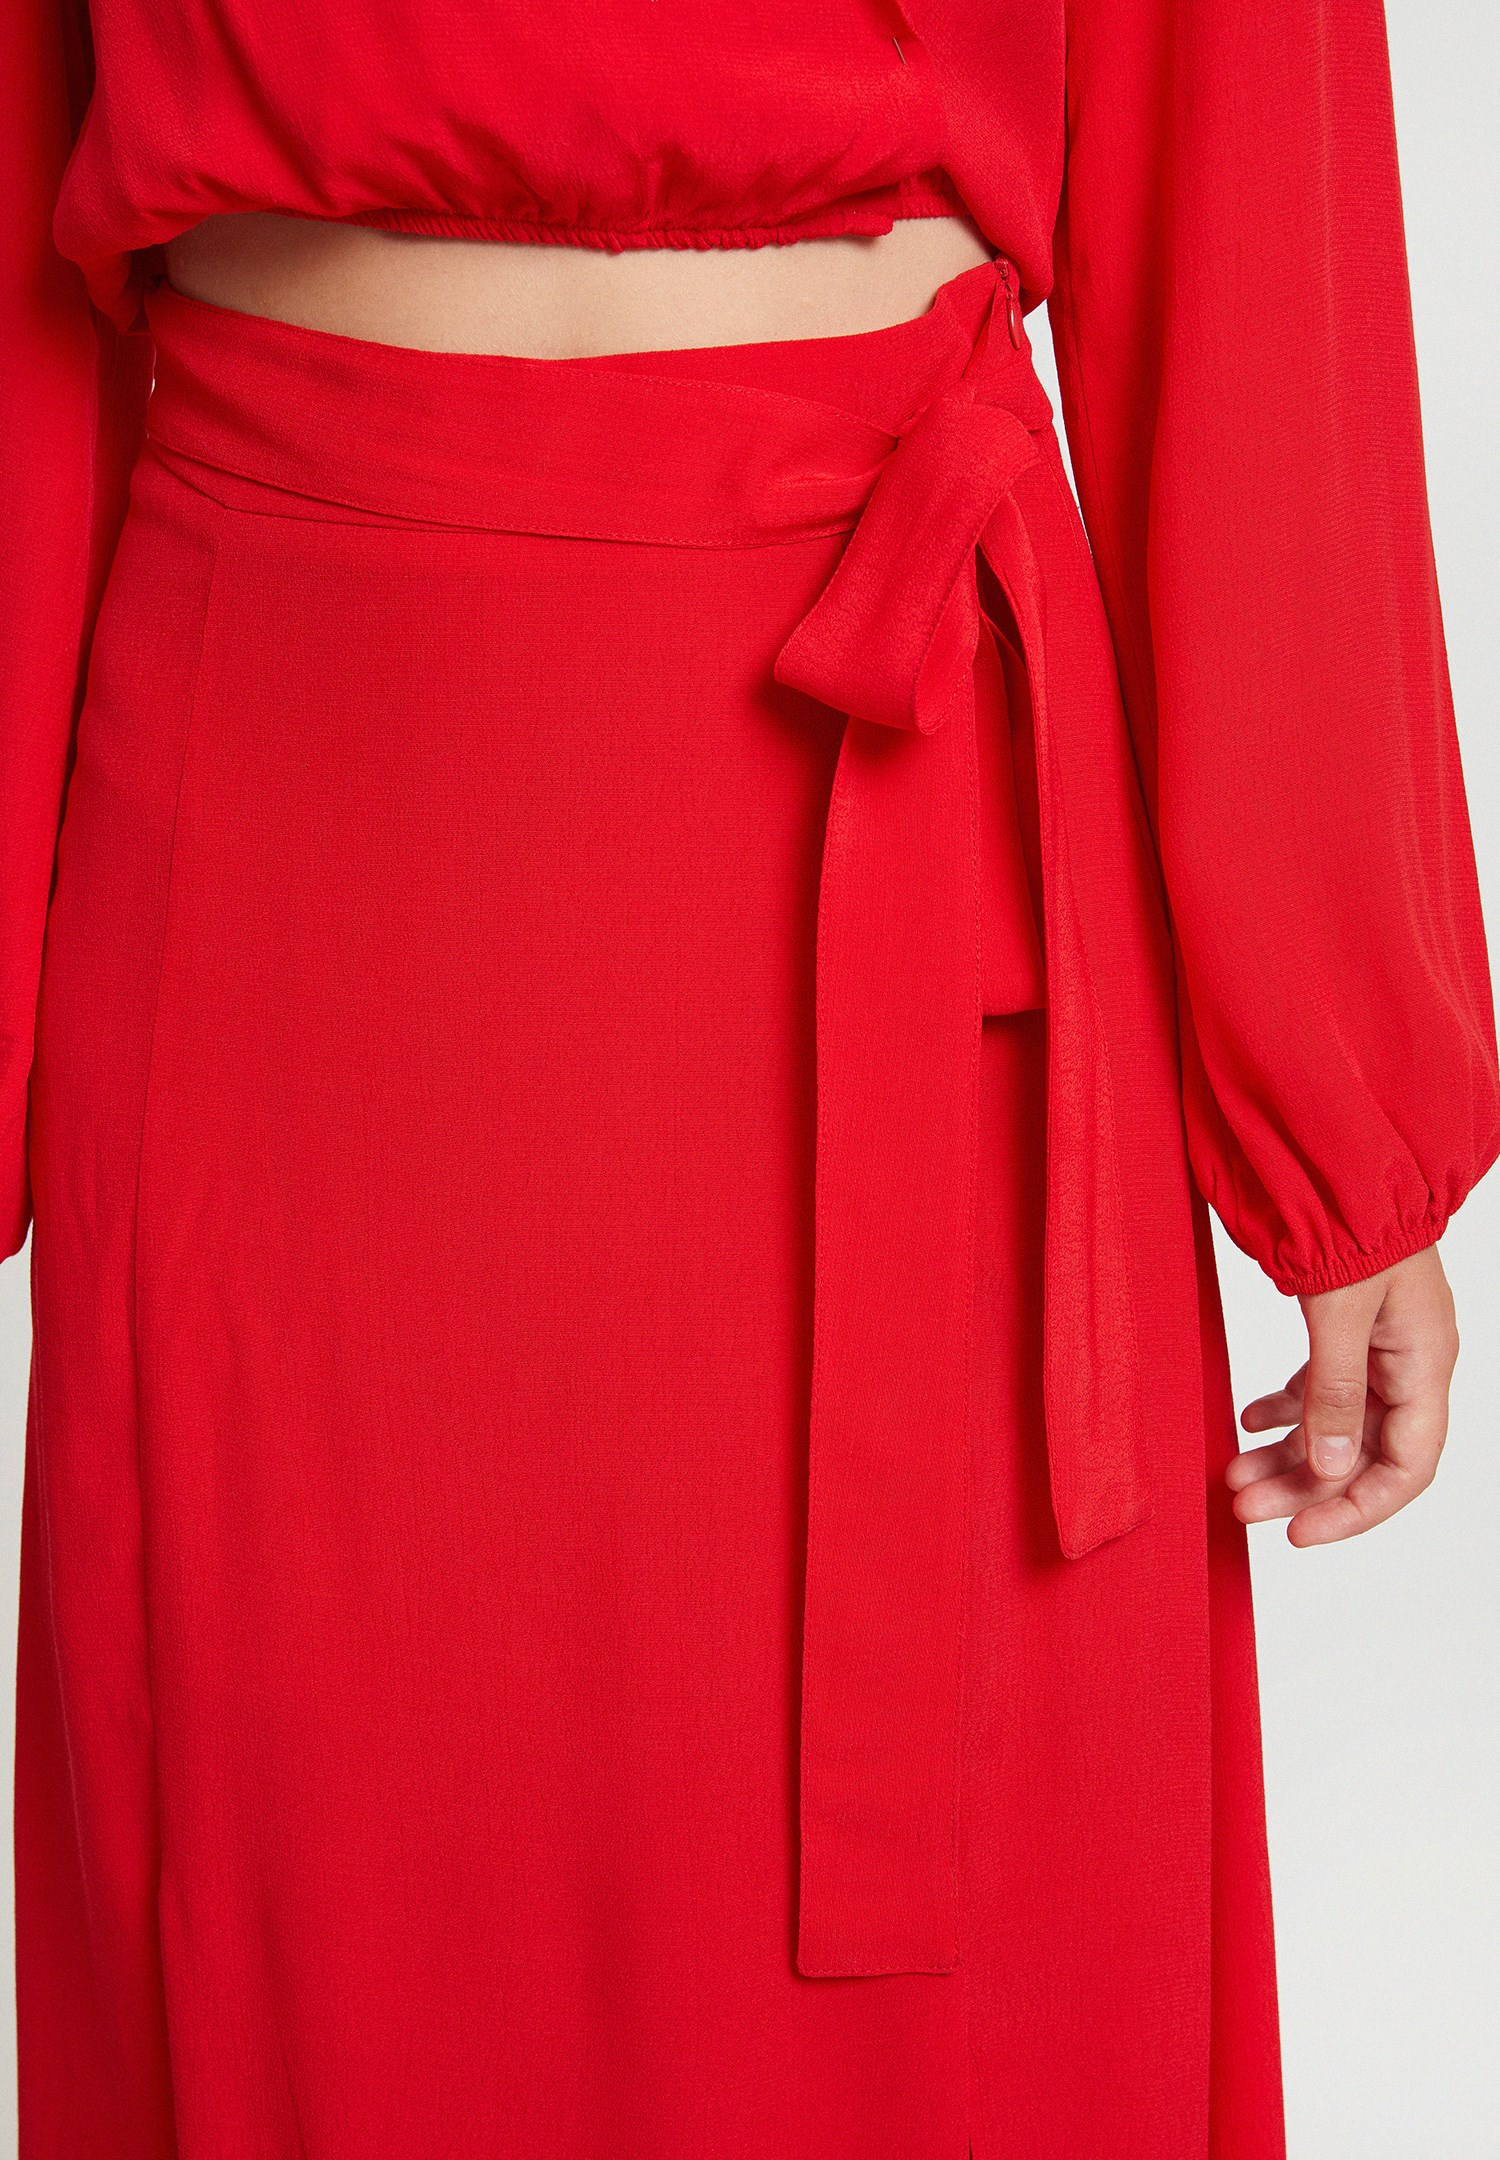 Women Red Skirt with Slits